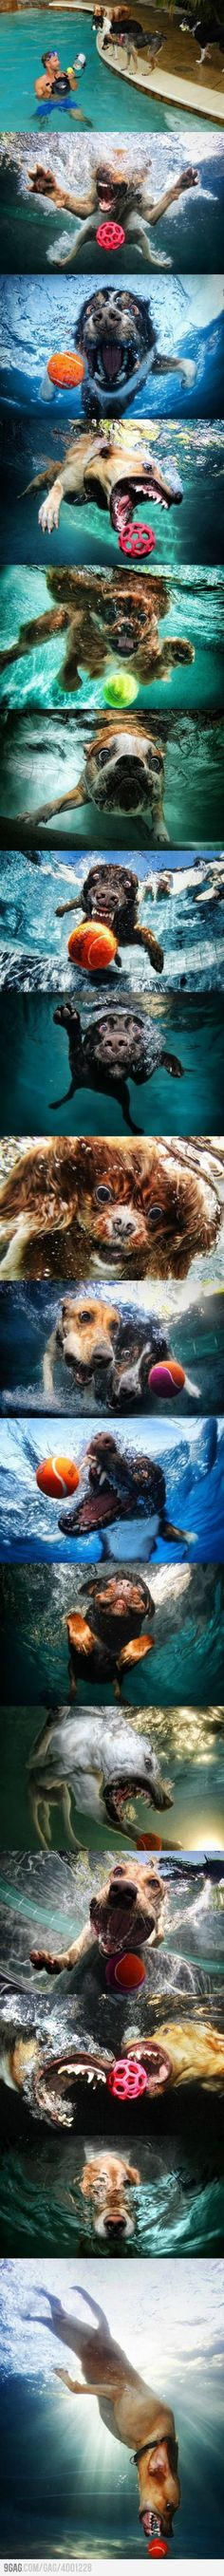 What a cool photo shoot of dogs jumping for the ball into the pool. Wow, so cool.